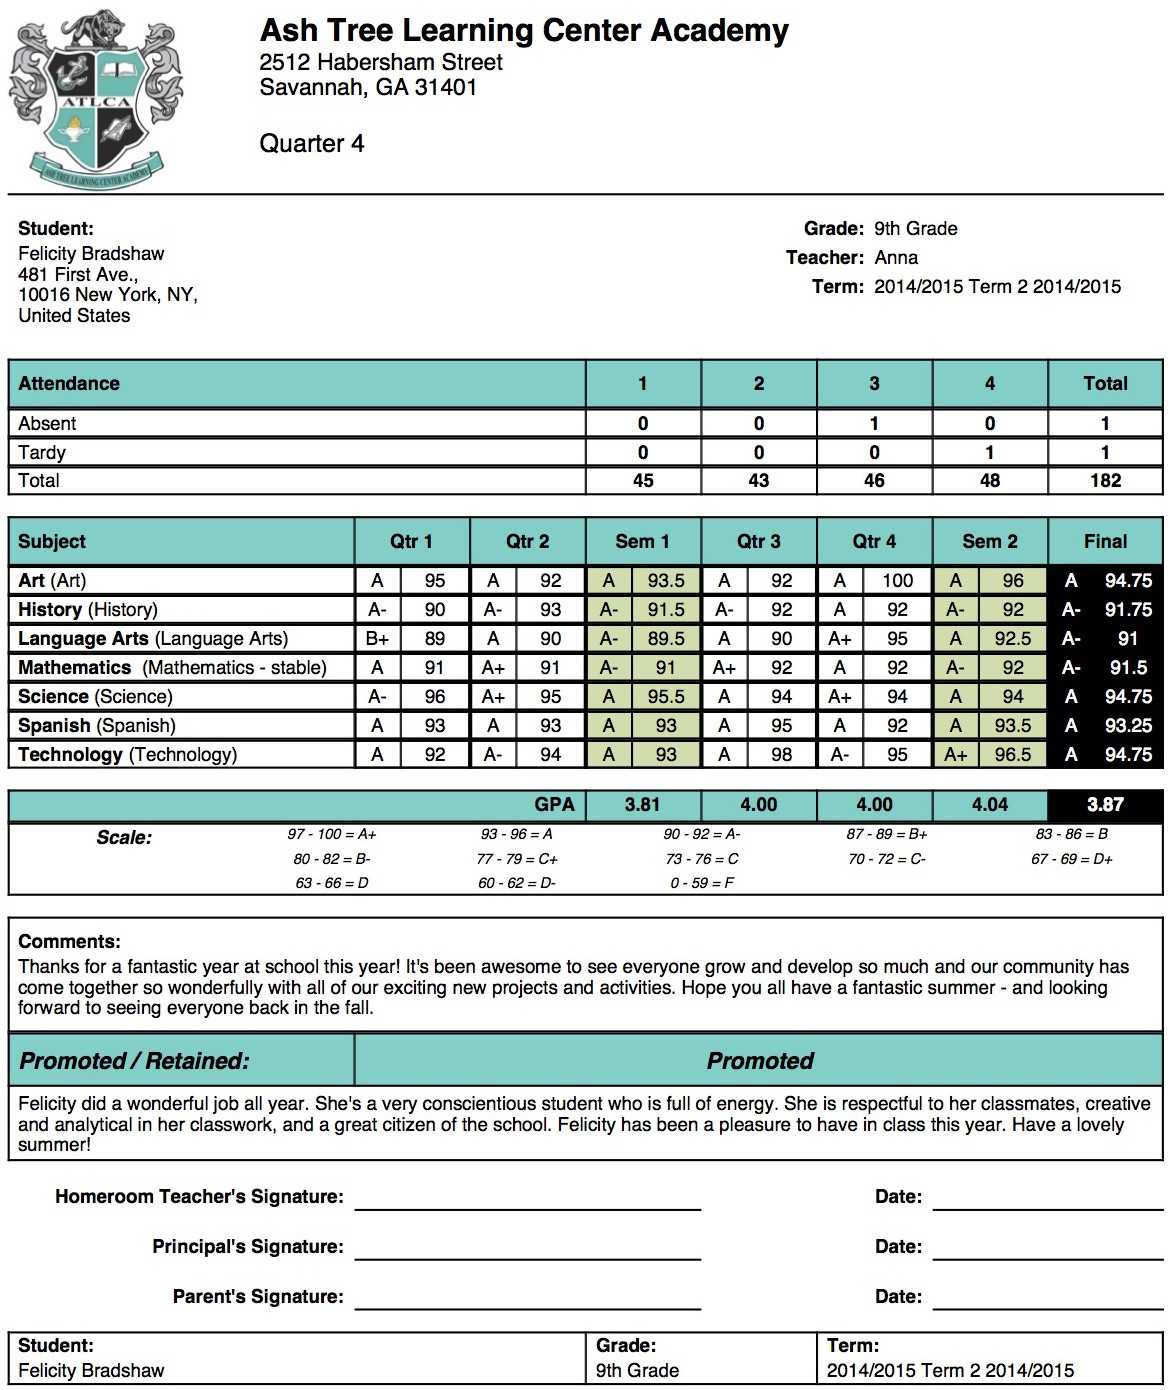 Ash Tree Learning Center Academy Report Card Template Pertaining To High School Student Report Card Template